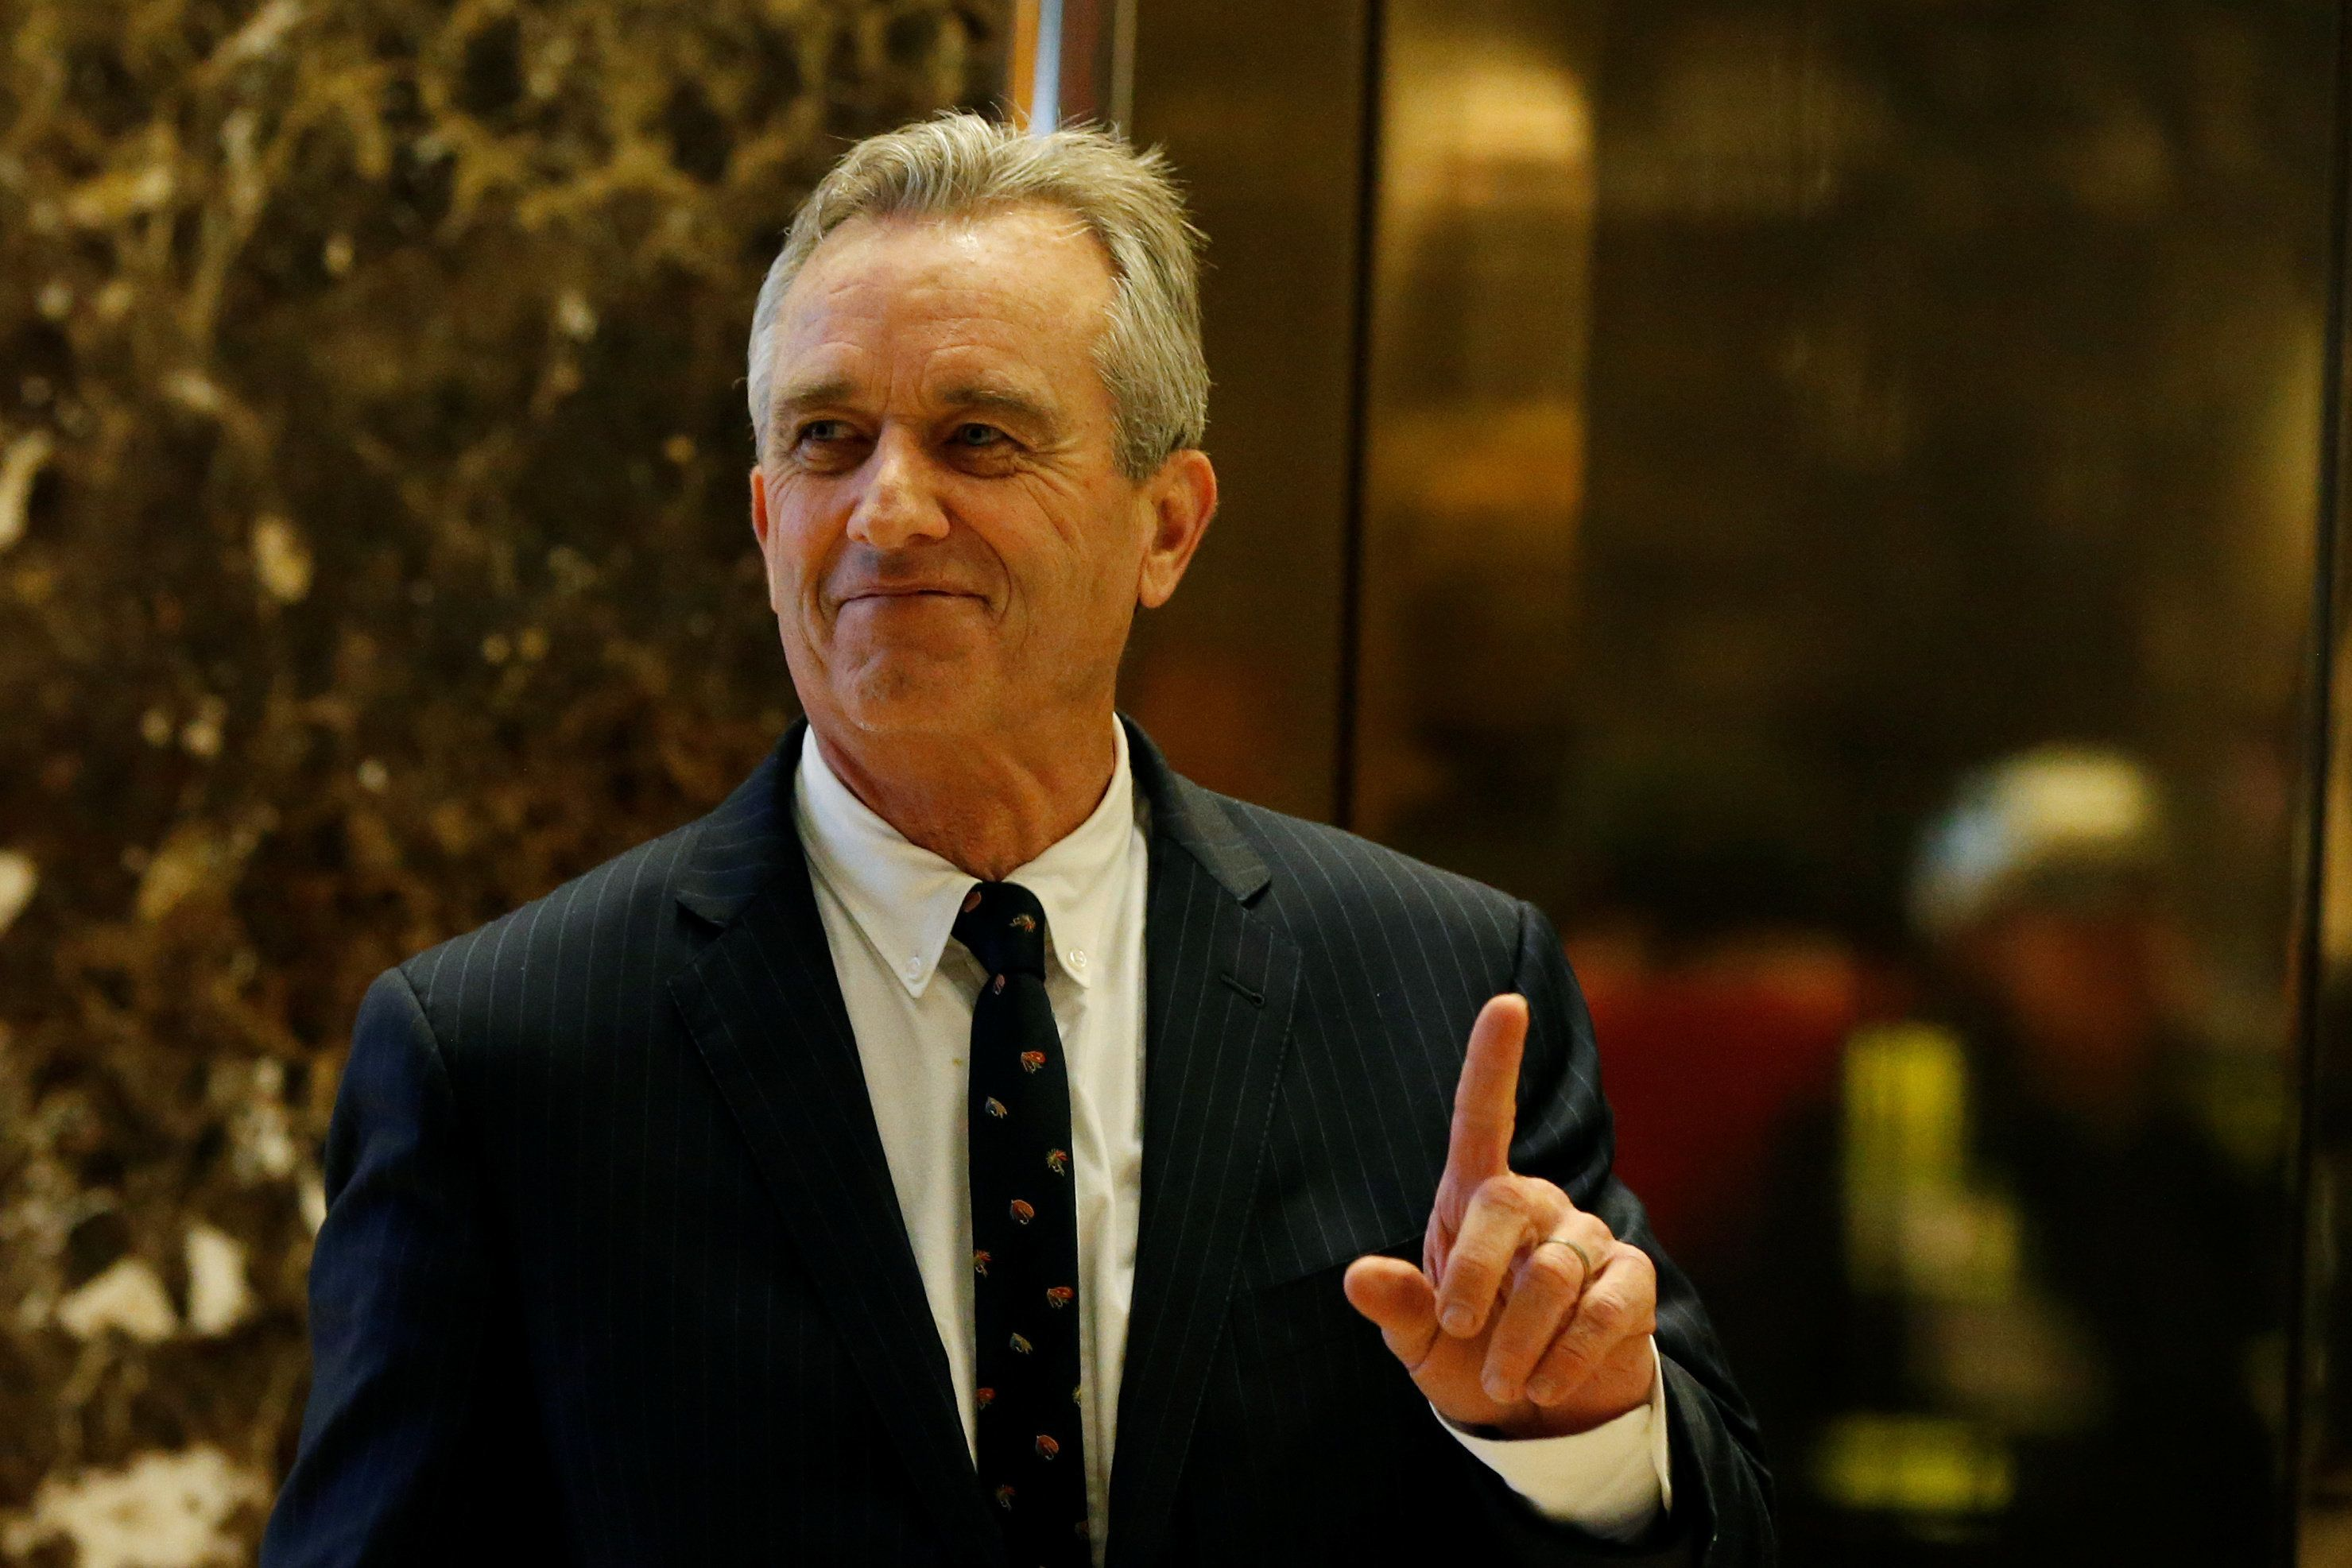 Robert F. Kennedy Jr. wrote a book suggesting a vast vaccine coverup.